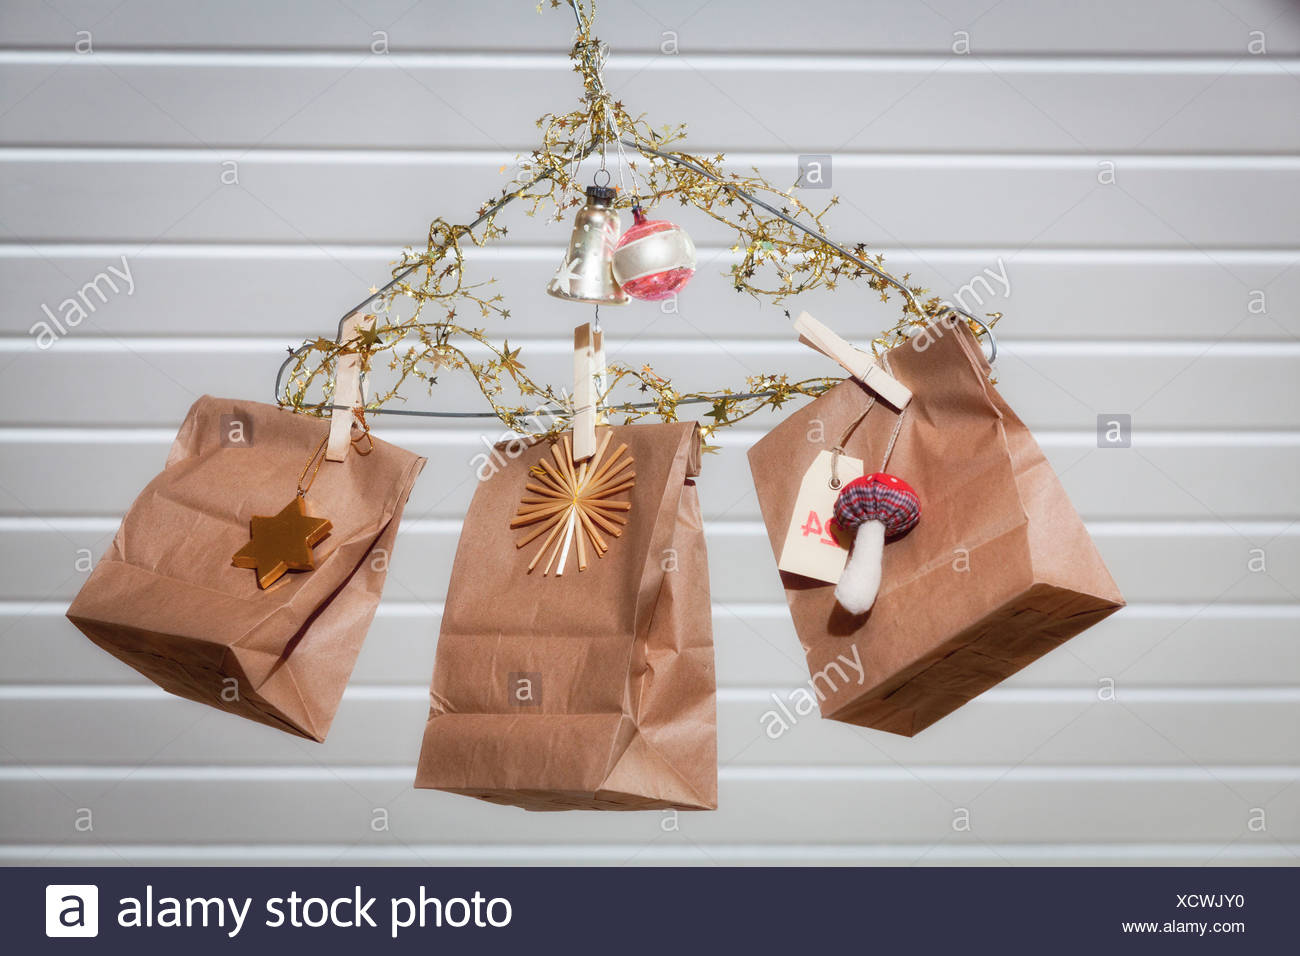 Christmas decoration gift bags hanging from coat hanger munich